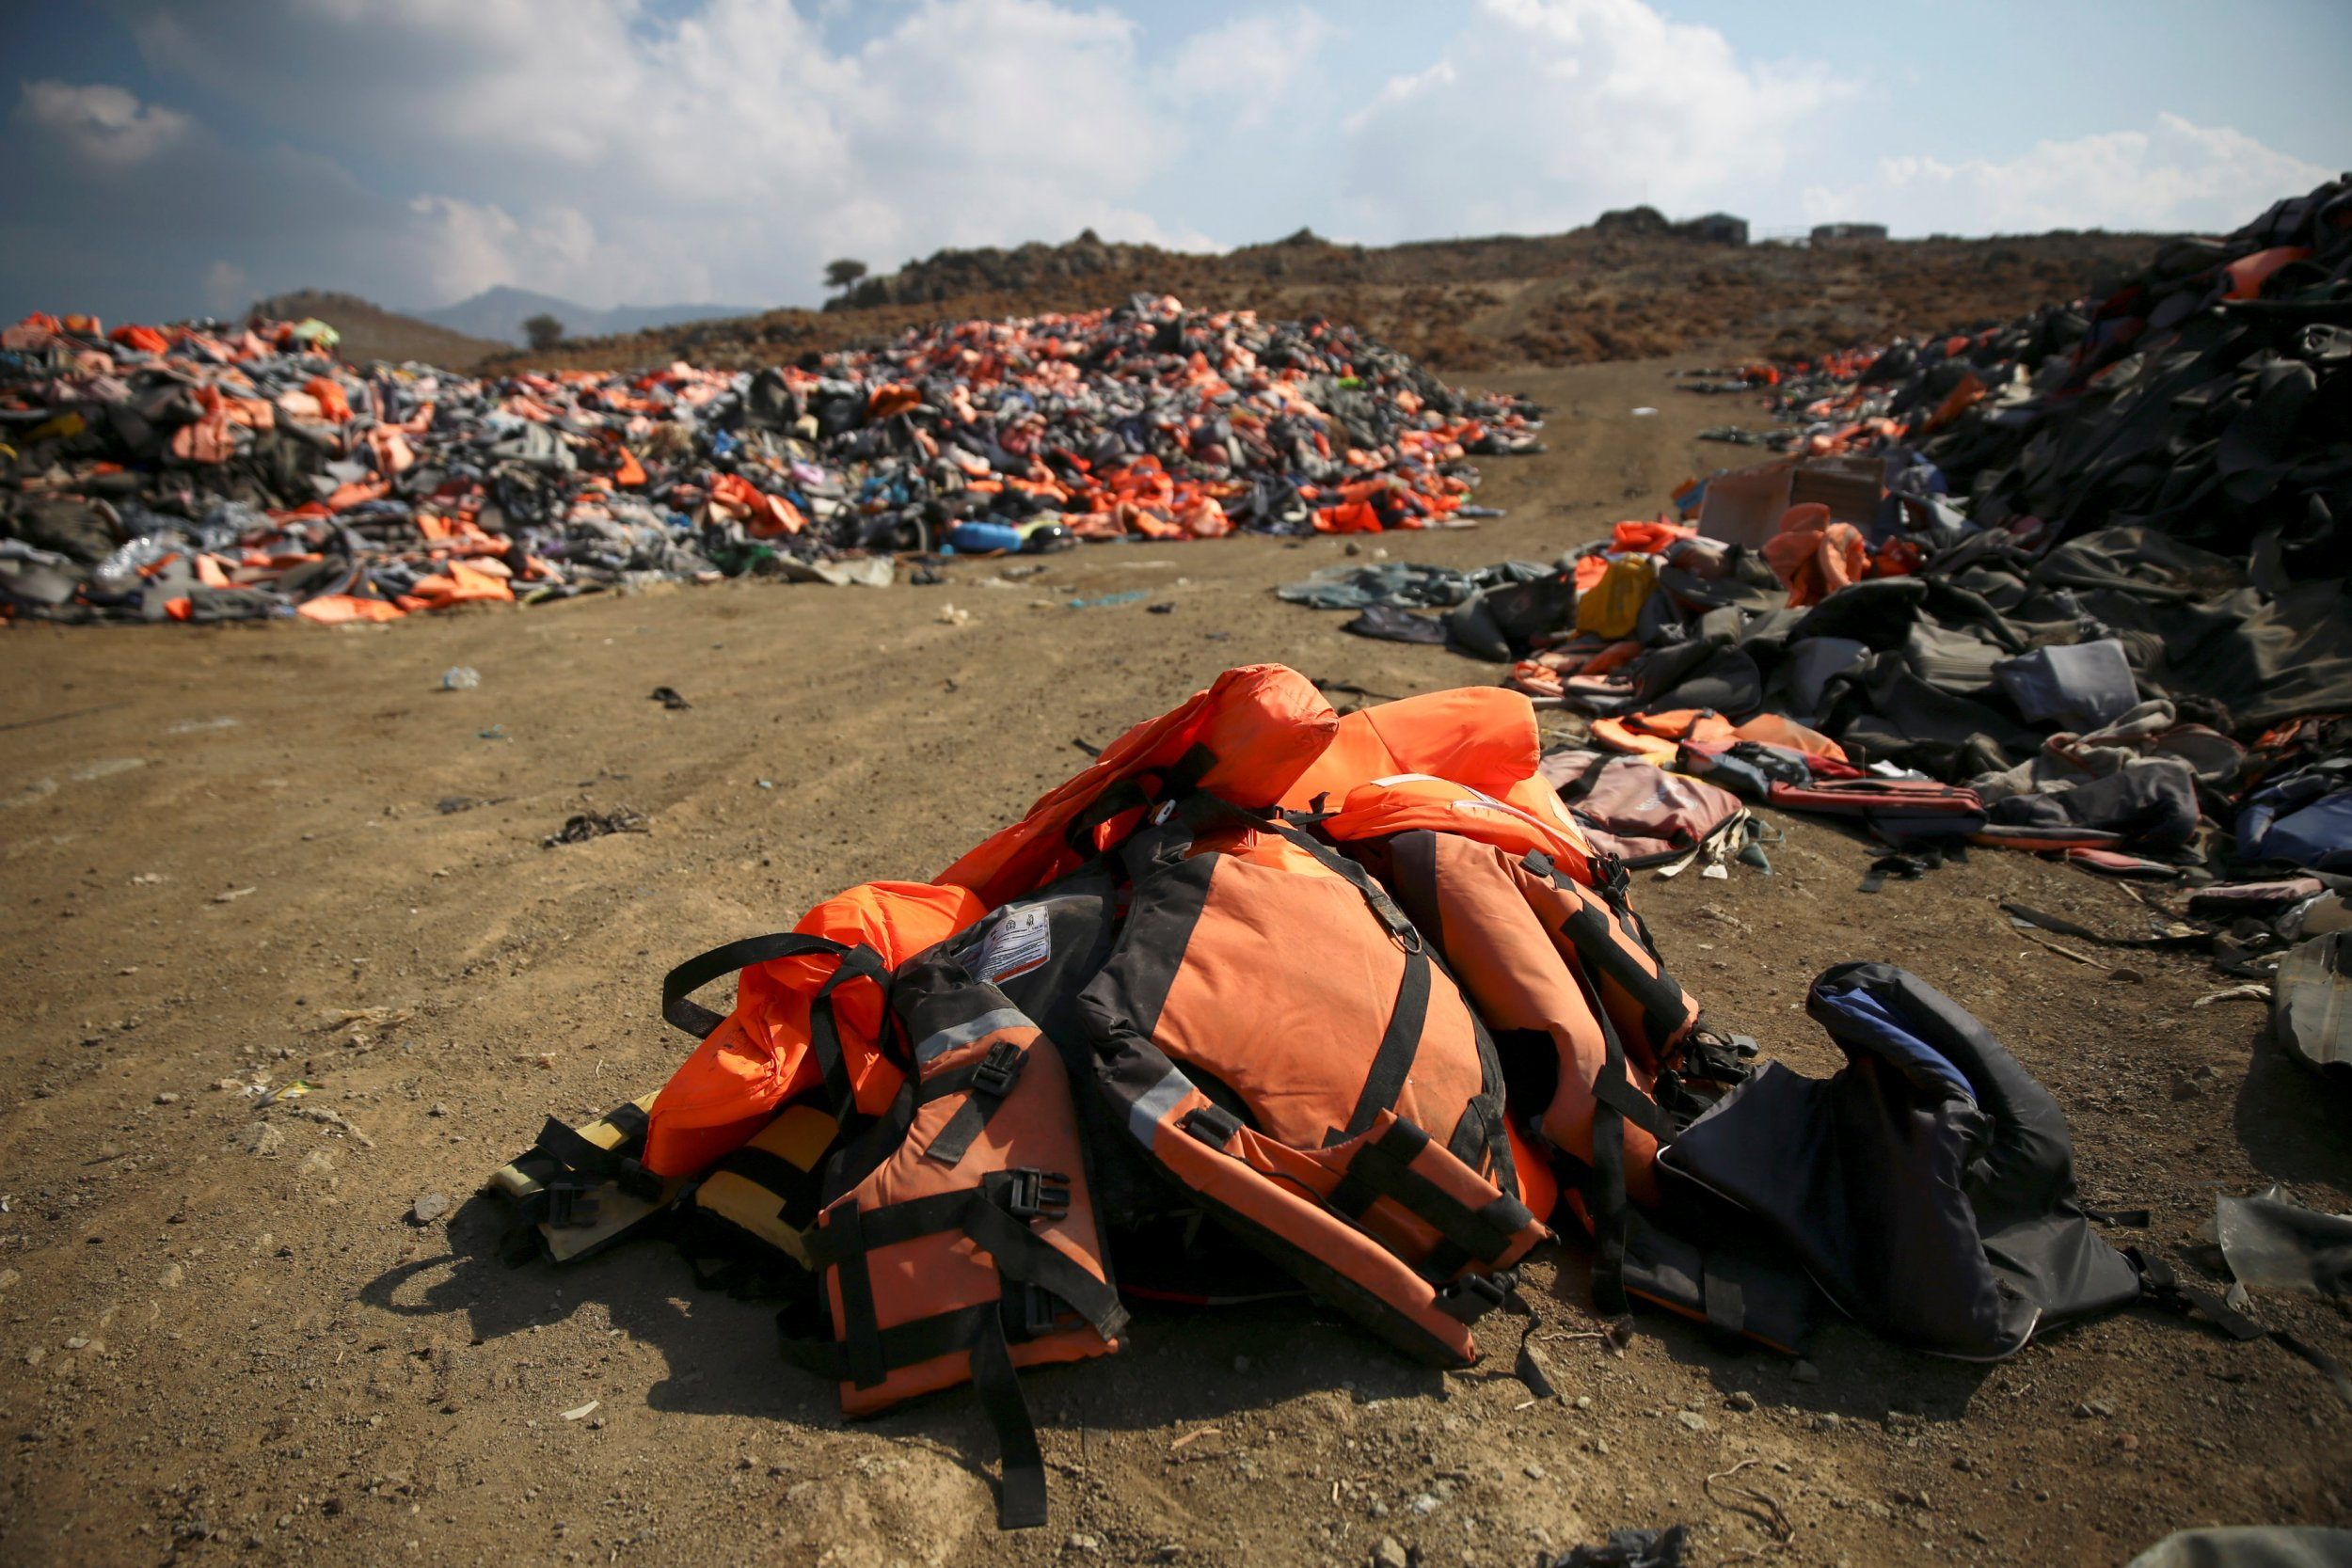 Refugee lifejackets Greece